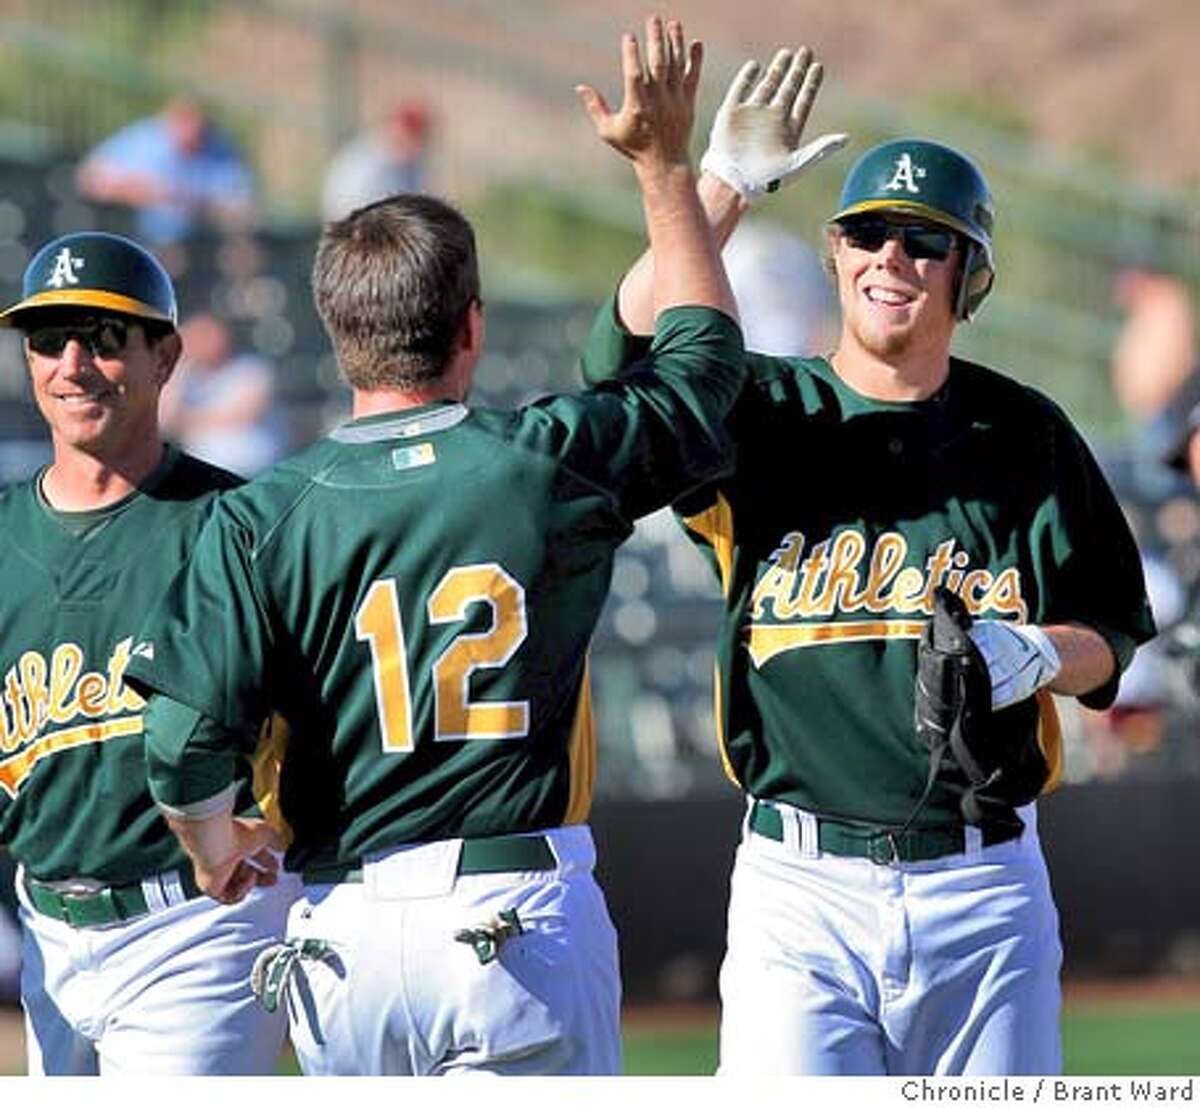 Aaron Cunningham is congratulated by 12 Donnie Murphy after his 9th inning hit scored the winning run Sunday. On March 2, 2008 the Oakland Athletics played the Colorado Rockies in a spring training exhibition game at Phoenix Municipal Stadium. Photo by Brant Ward / San Francisco Chronicle